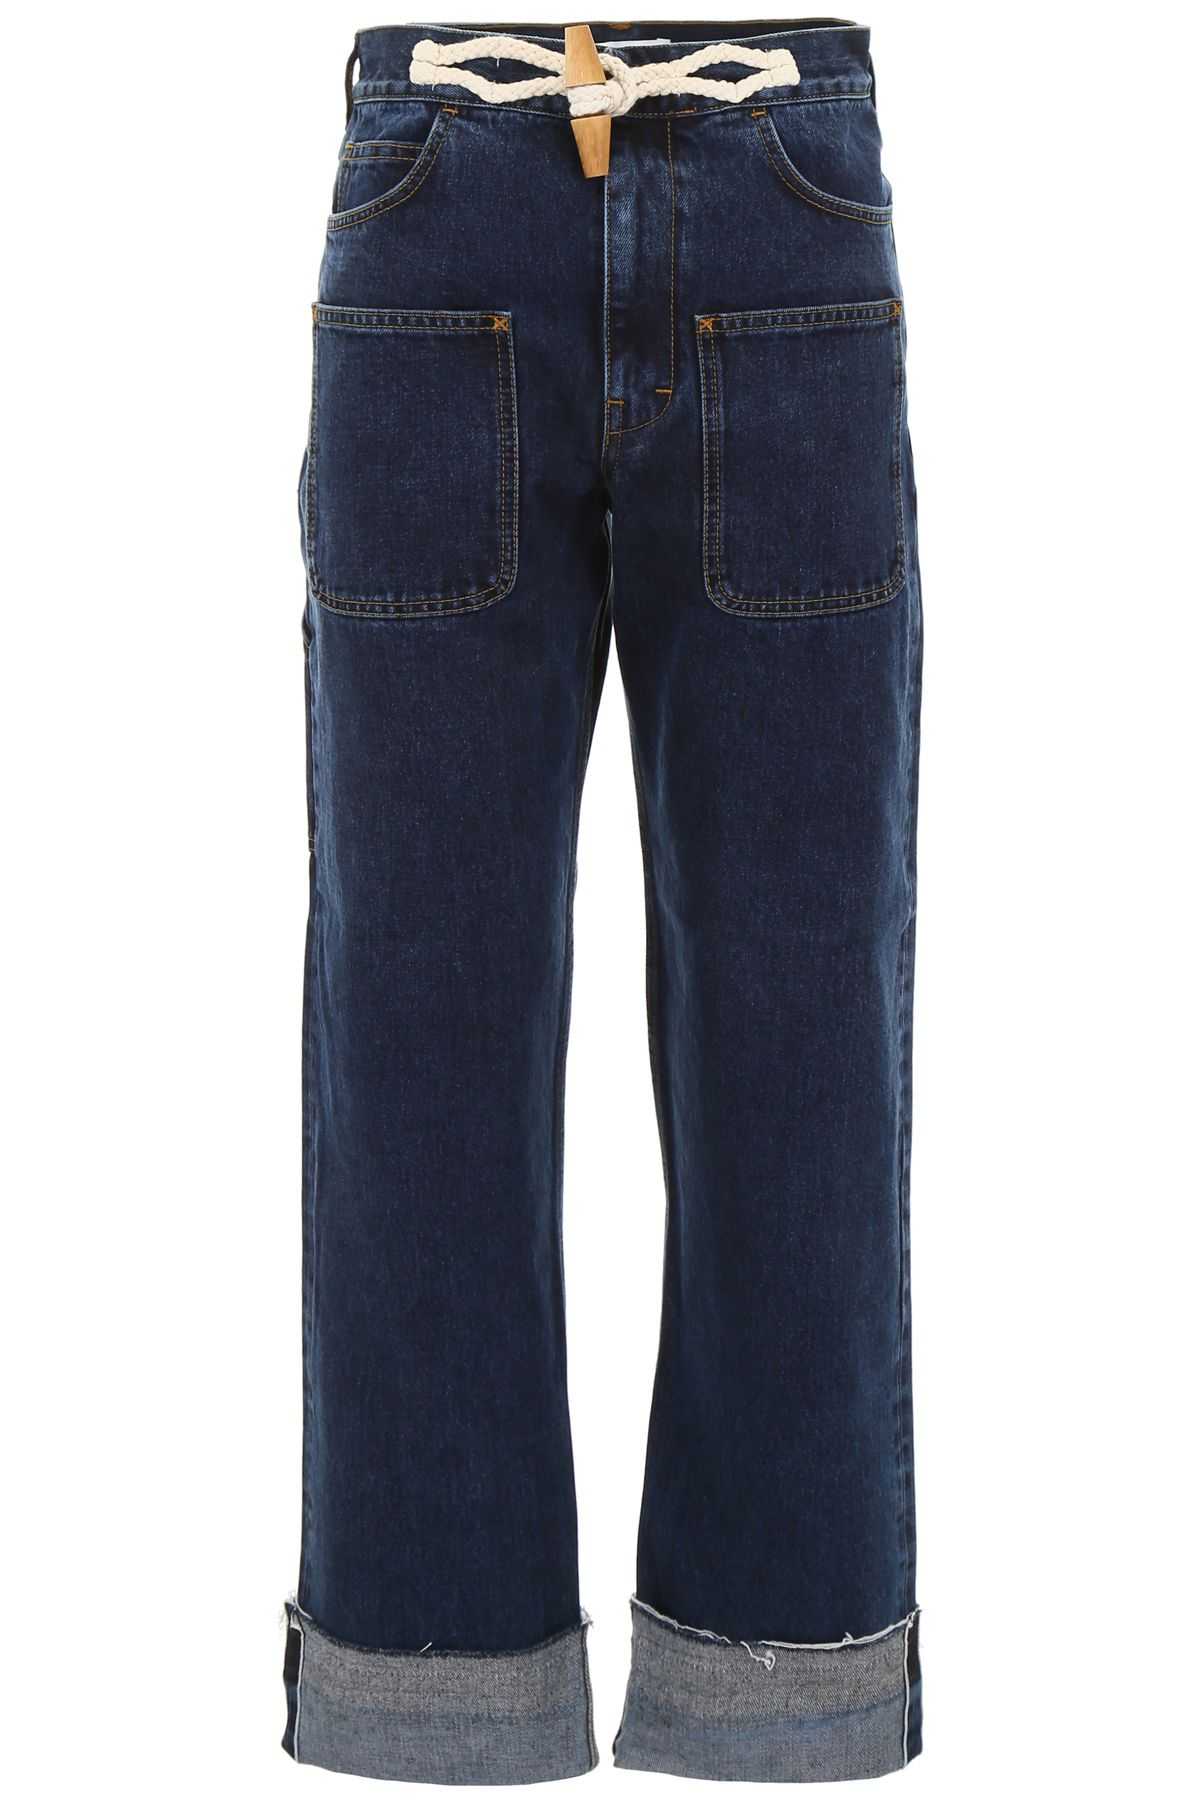 J.W. Anderson Jeans With Toggle